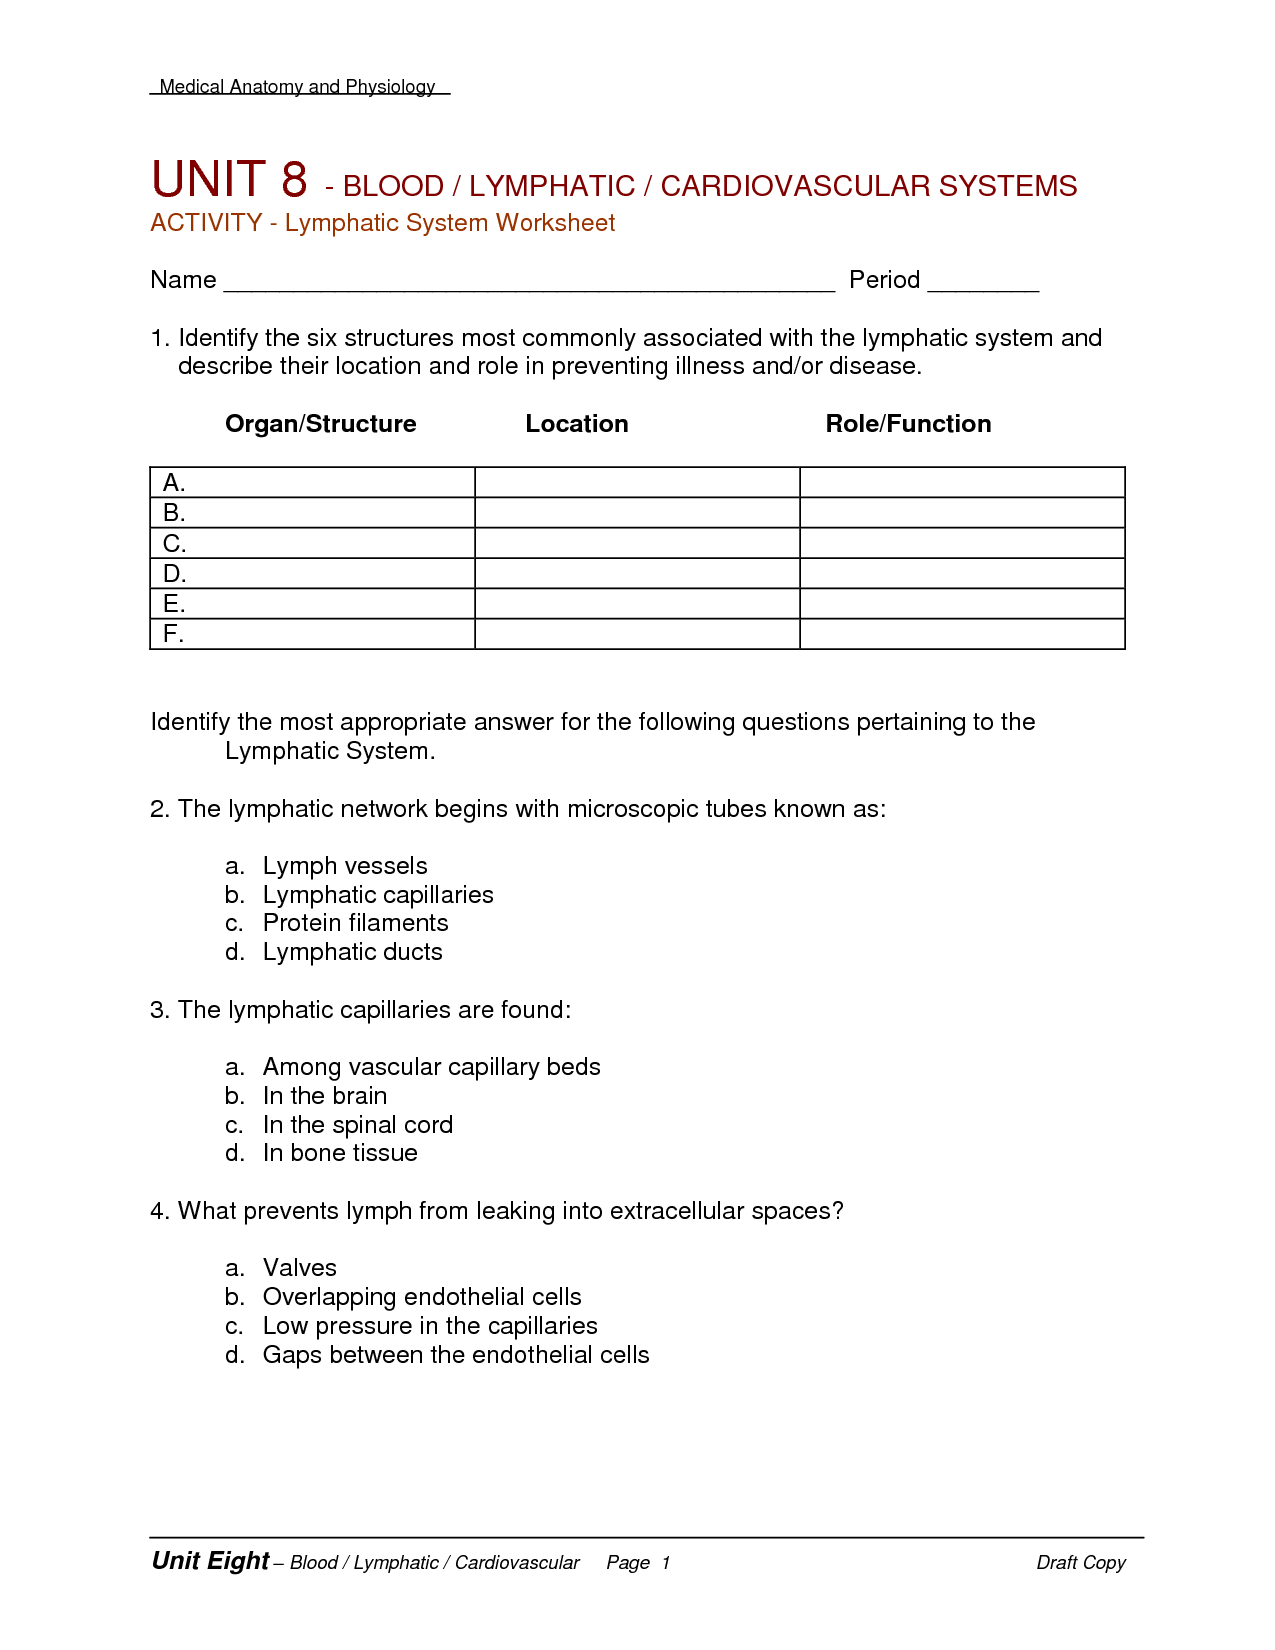 19 Best Images Of Anatomy And Physiology Blood Worksheet